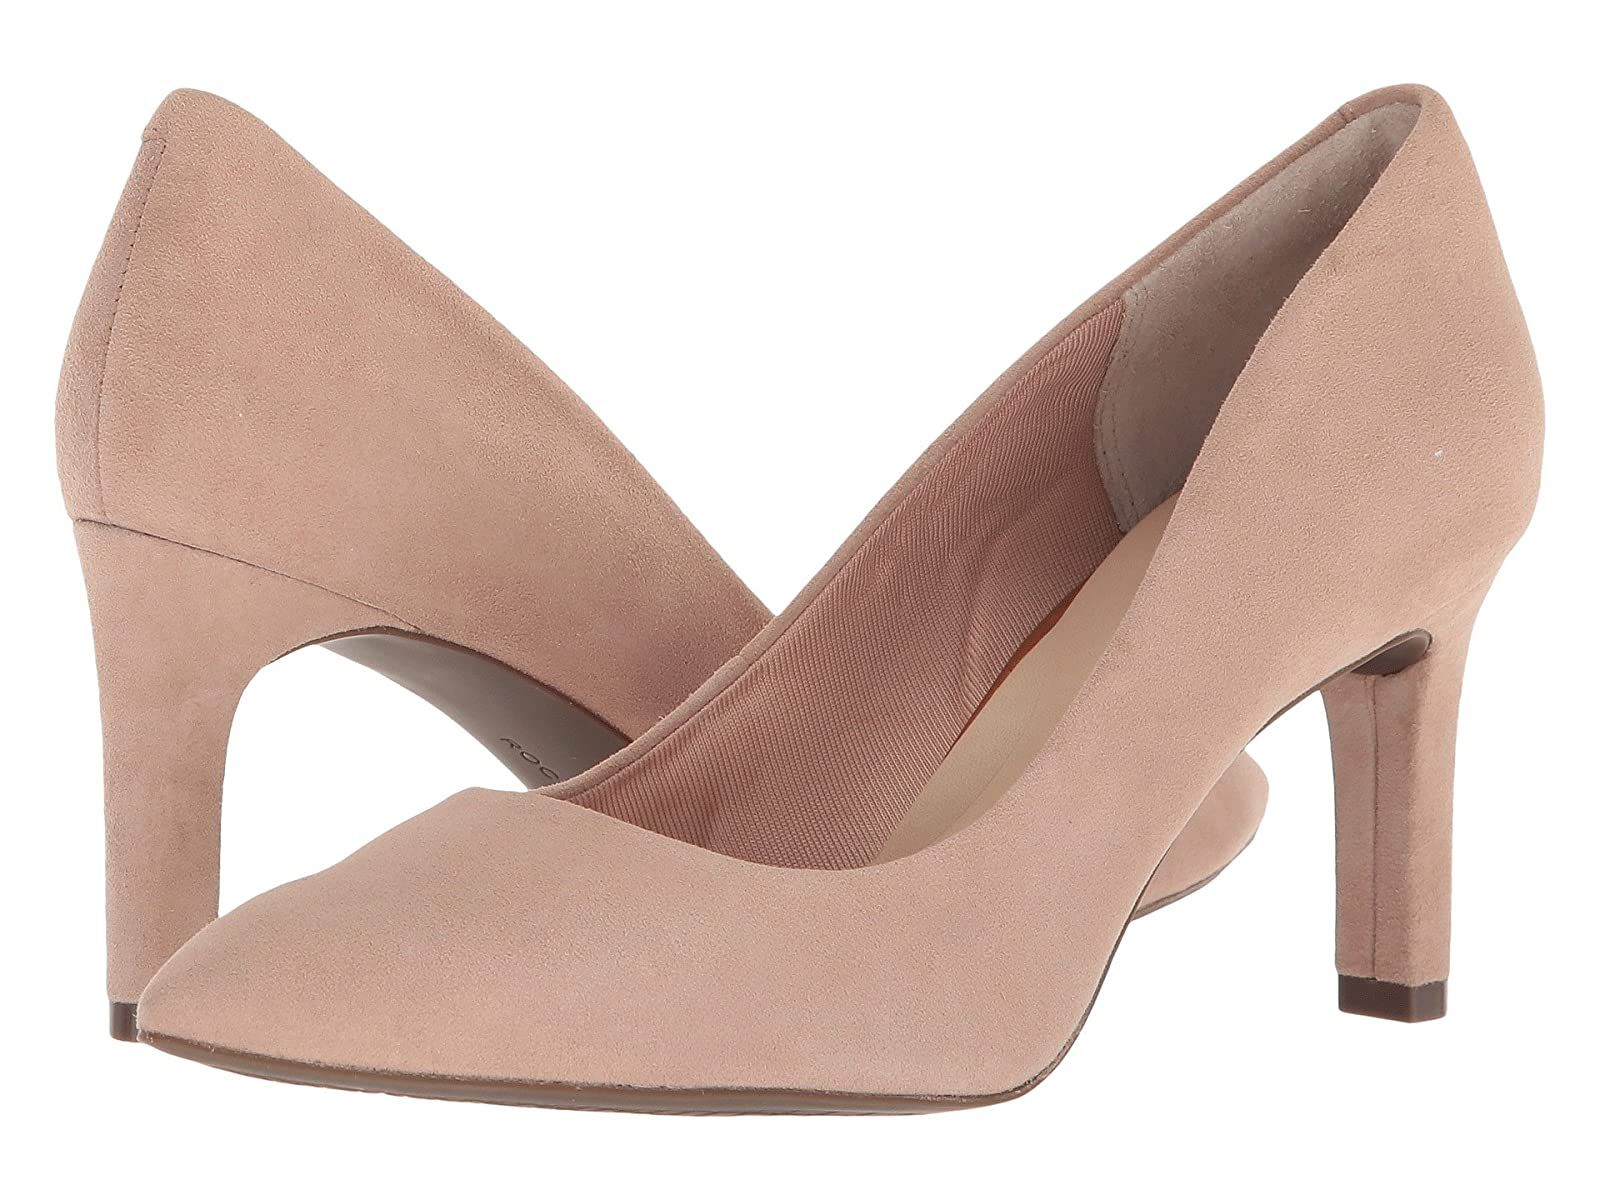 Rockport Total Motion Valerie Luxe PumpCheap and distinctive eye-catching shoes